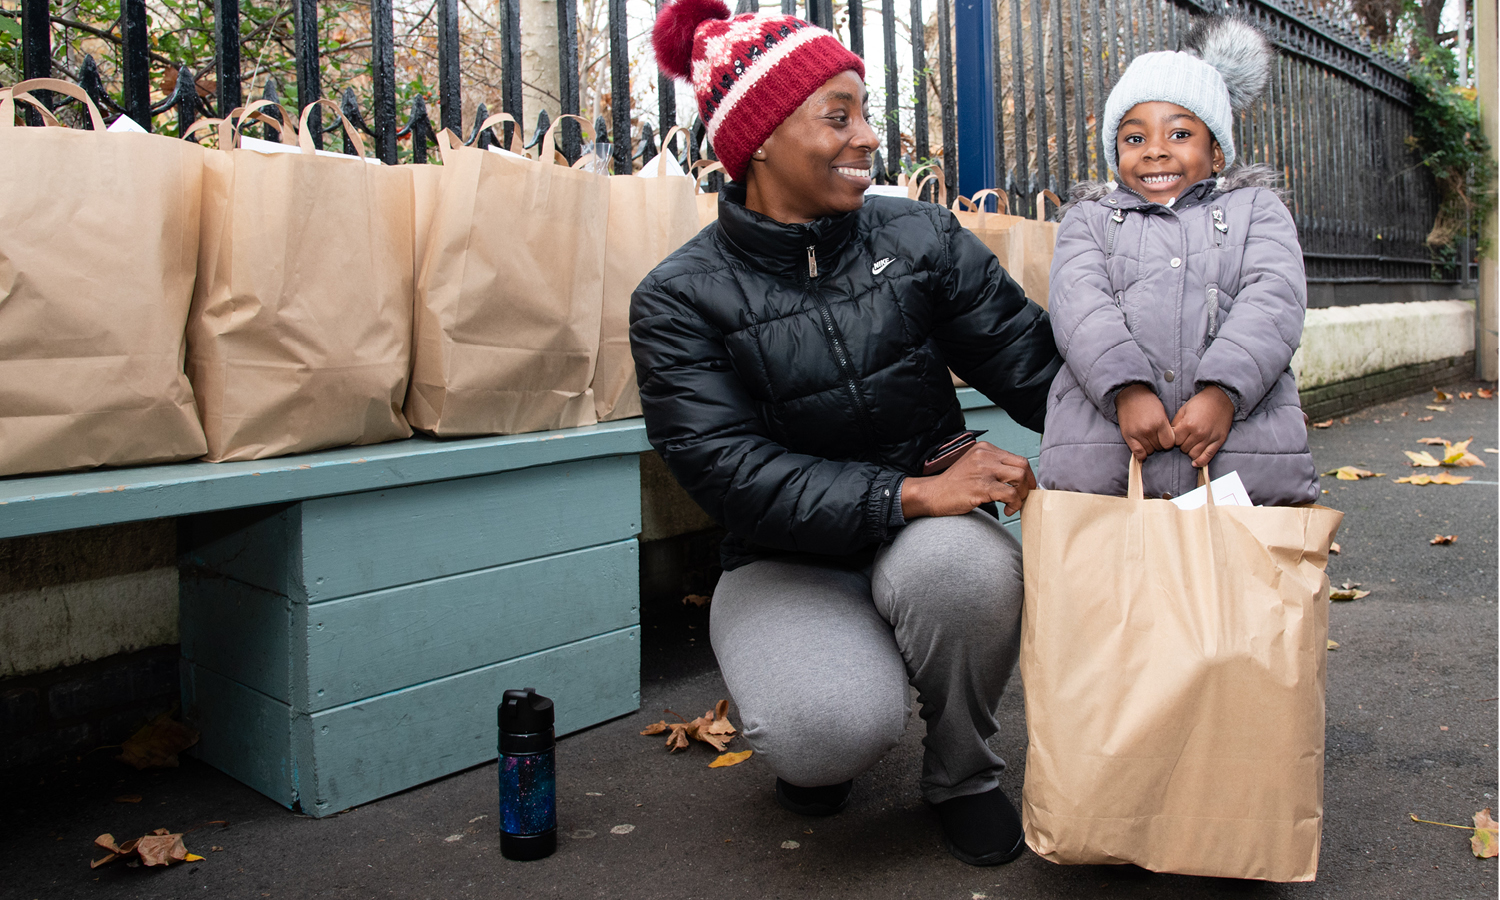 Mum and daughter smiling with food package